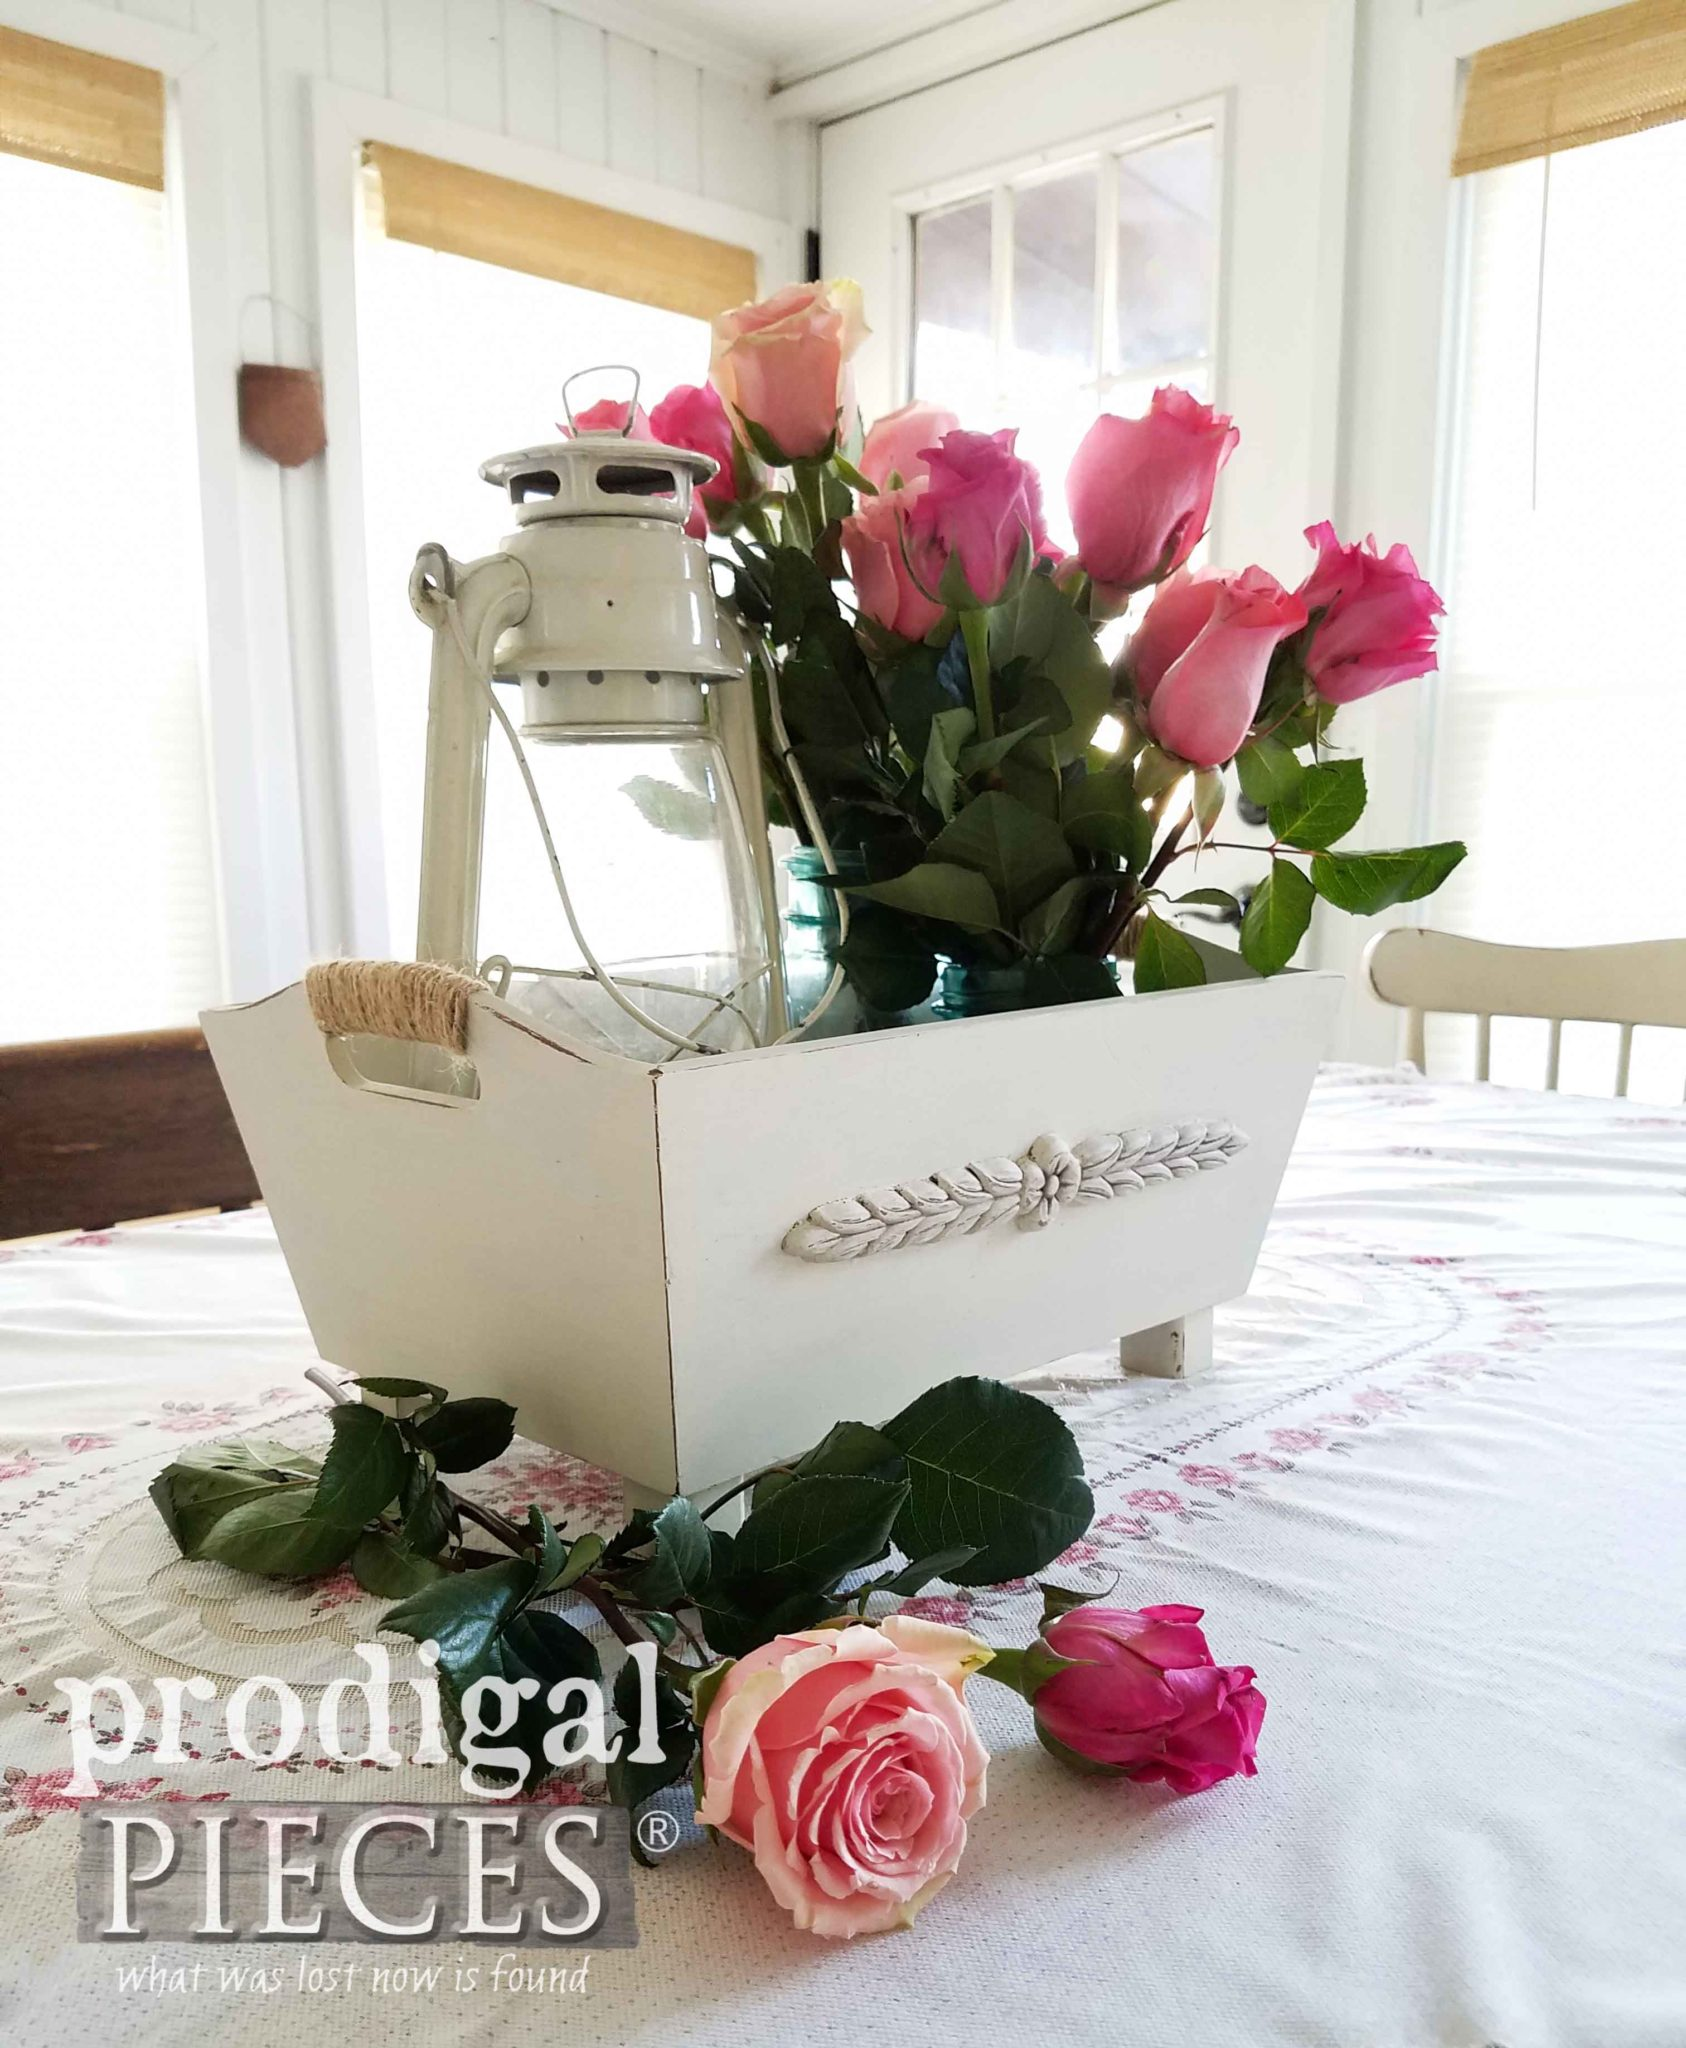 Thrifted Box Repurposed into Table Centerpiece with a little TLC by Larissa of Prodigal Pieces | prodigalpieces.com